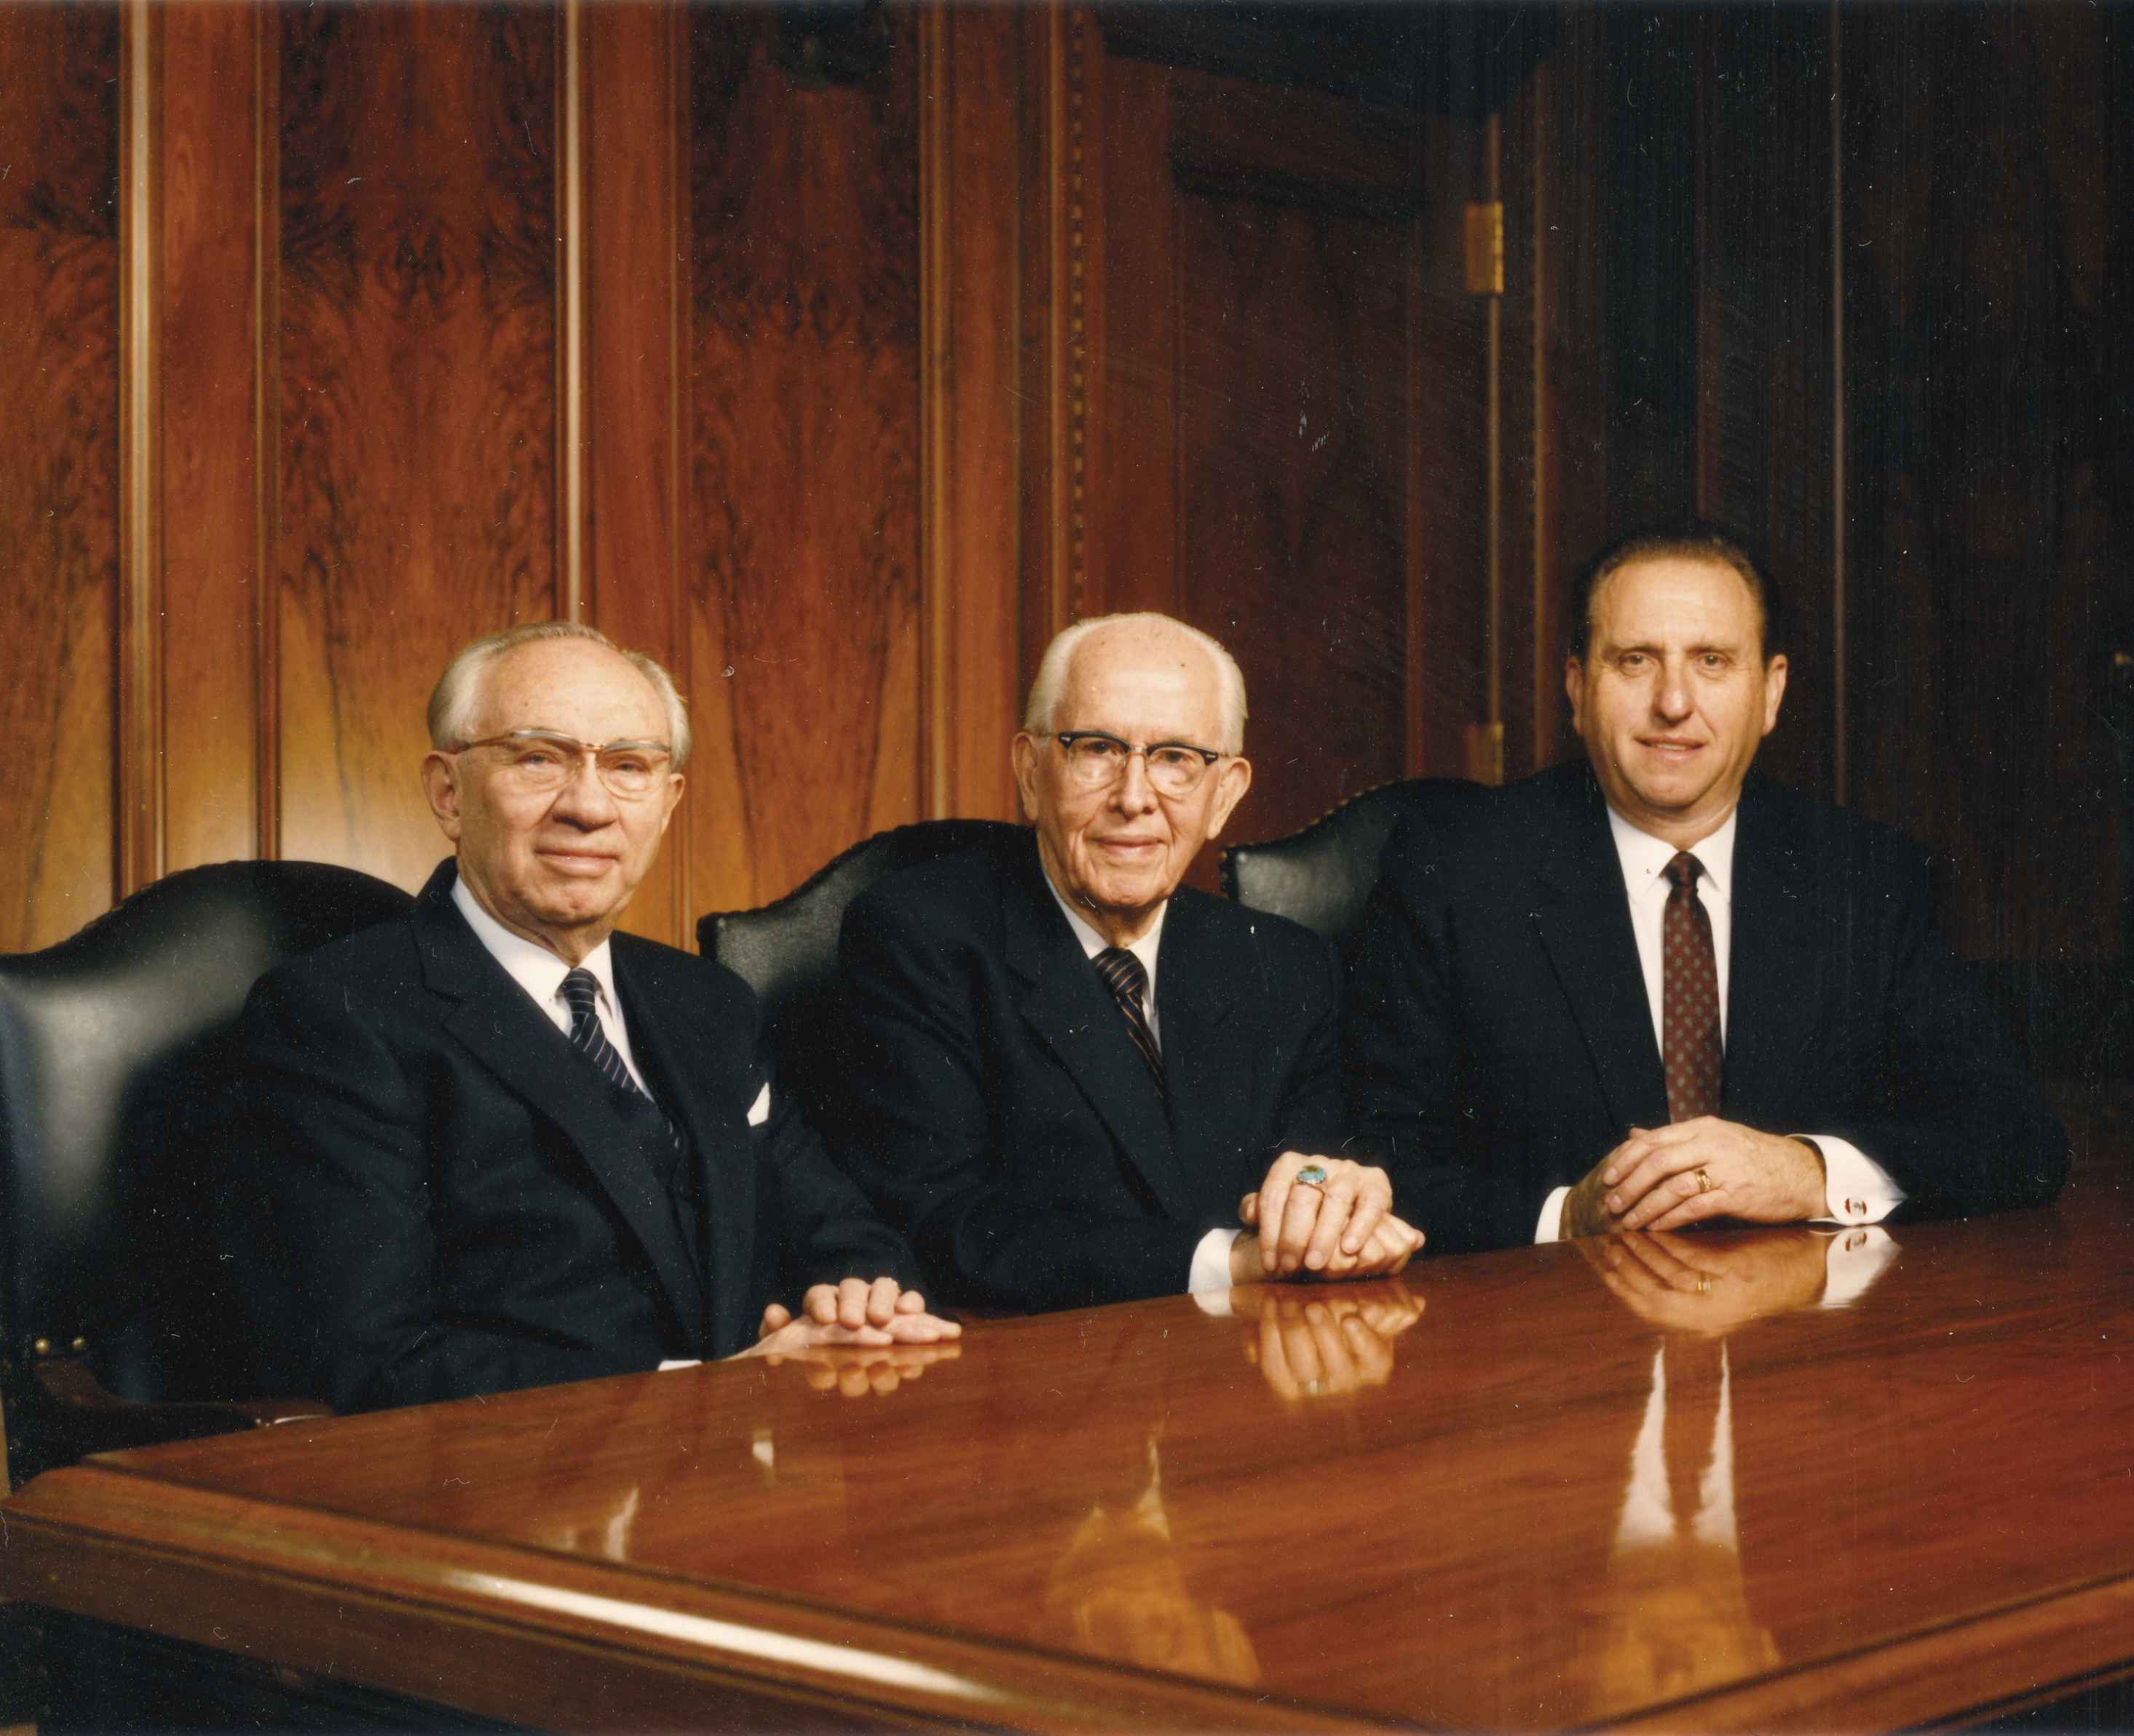 President Benson sitting by his counselors in the First Presidency, President Hinckley and President Monson. Teachings of Presidents of the Church: Ezra Taft Benson (2014), 31